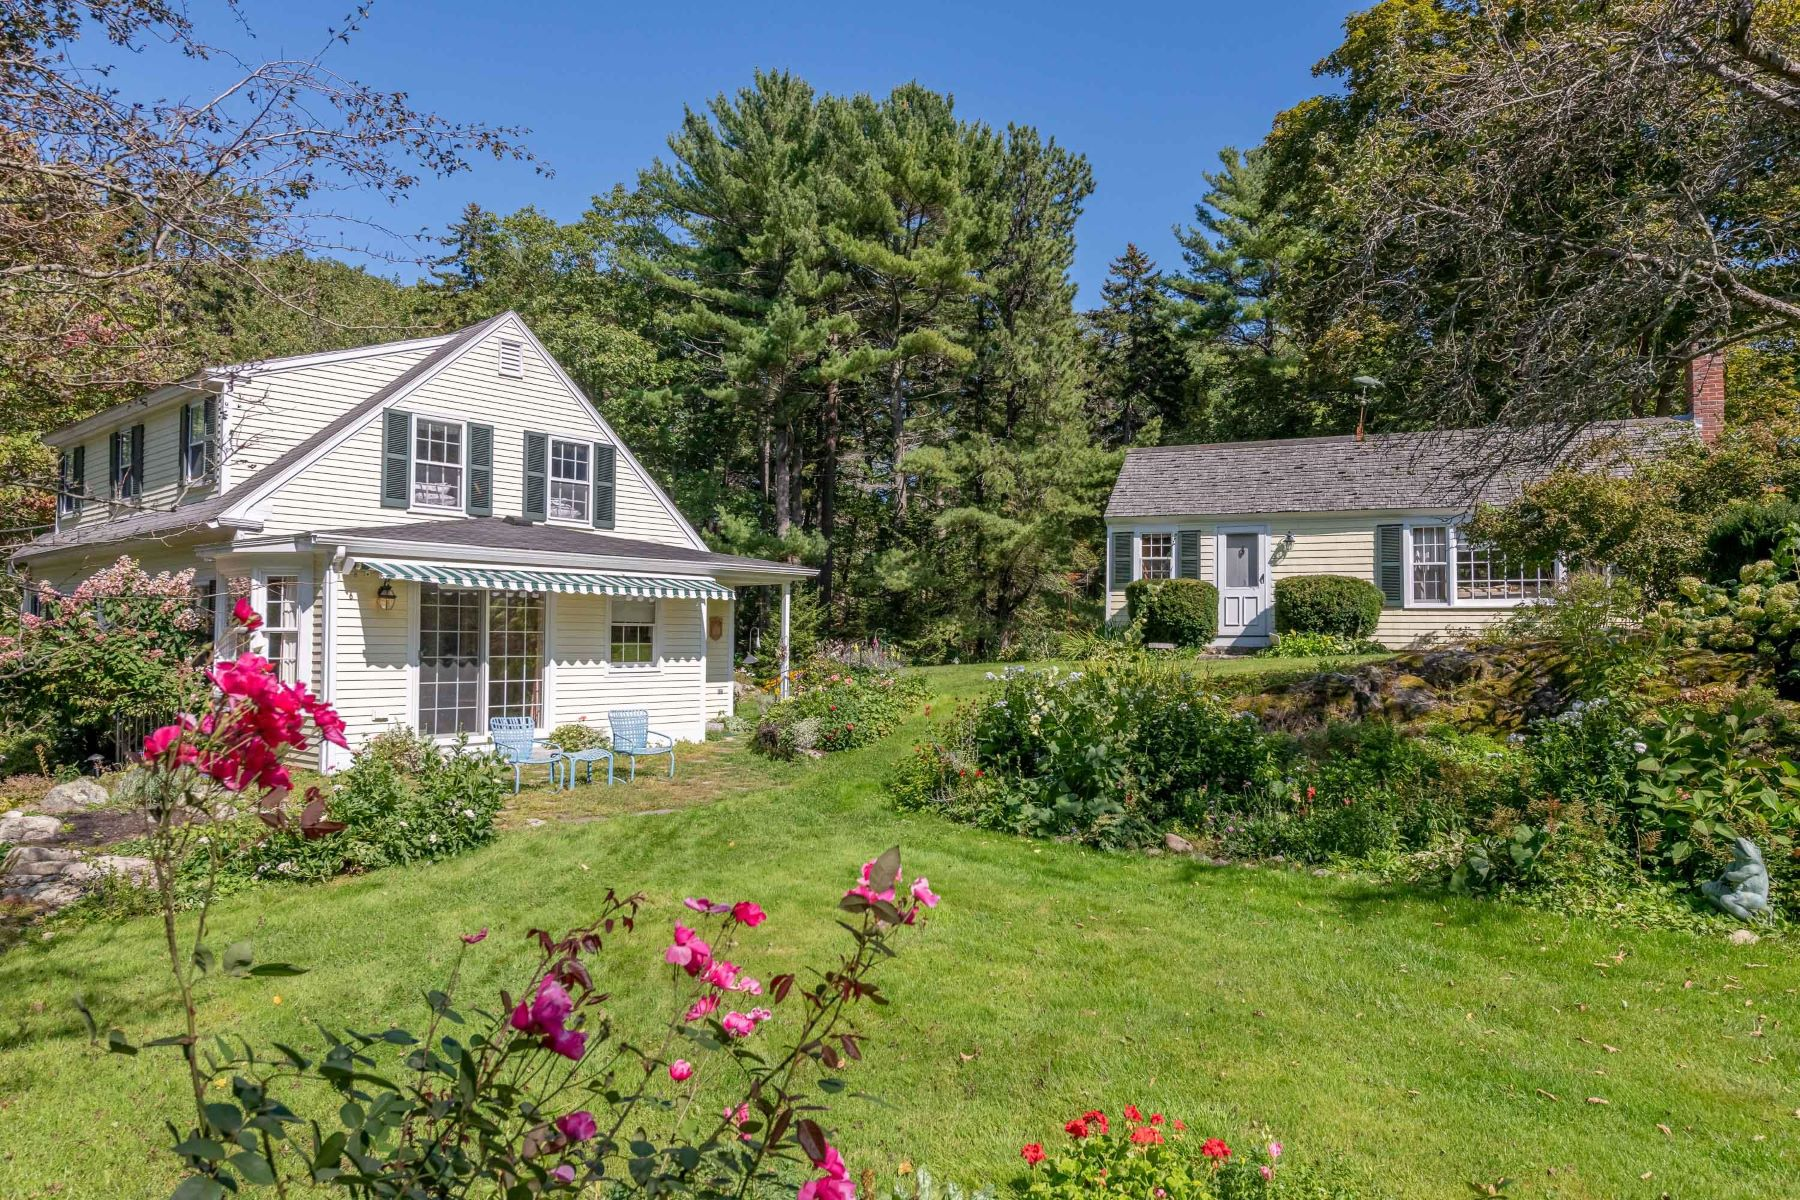 Single Family Homes for Active at 30 Main Street Kennebunkport, Maine 04046 United States